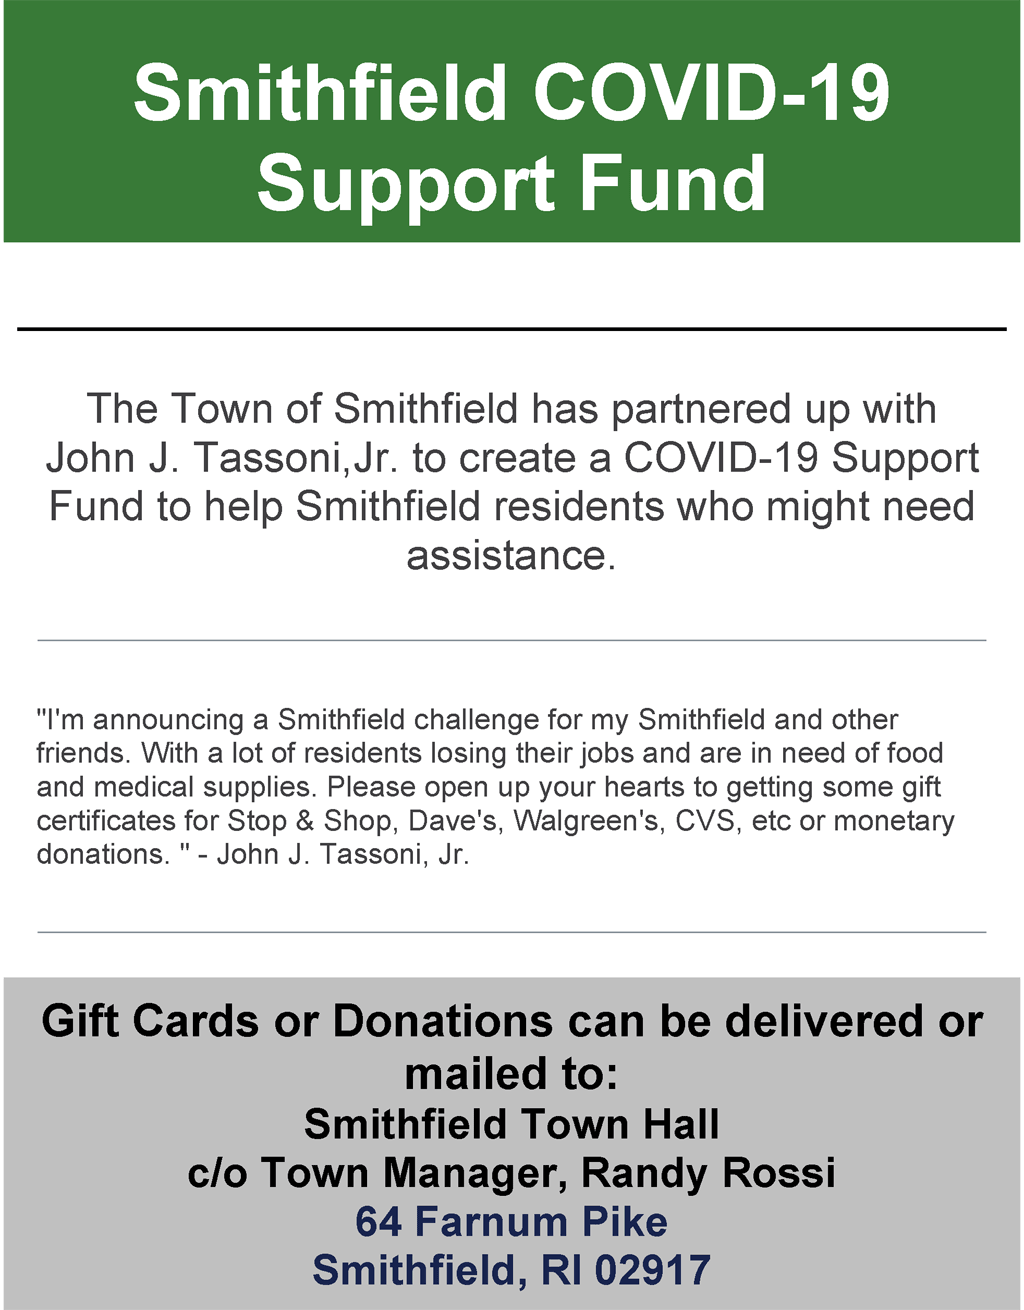 Smithfield COVID-19 Support Fund